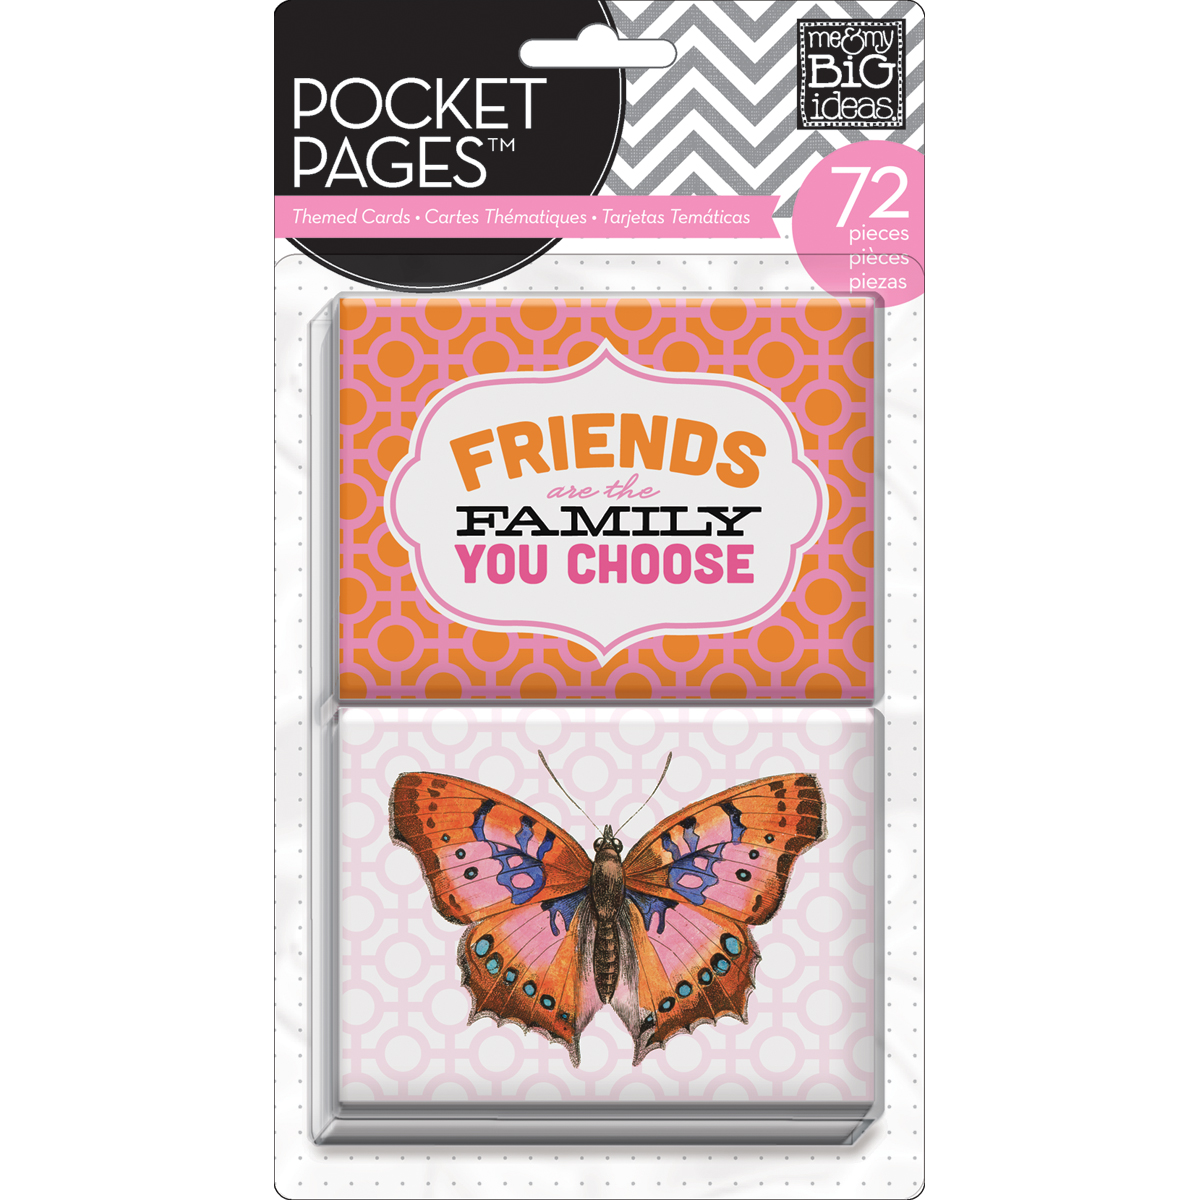 Me & My Big Ideas Pocket Pages Themed Cards Friends